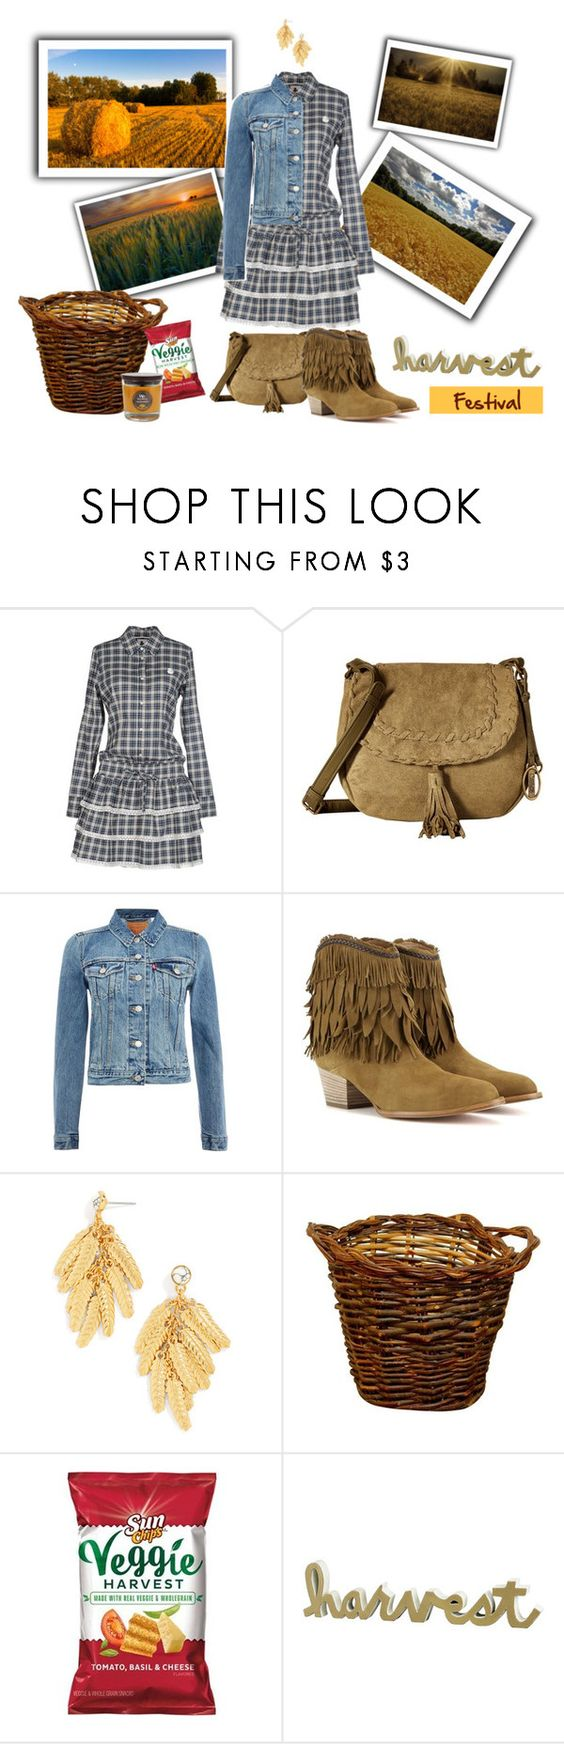 """Harvest Festival"" by romaosorno ❤ liked on Polyvore featuring Duck Farm, Carlos by Carlos Santana, Levi's, Aquazzura, BaubleBar, Dot & Bo and WoodWick"